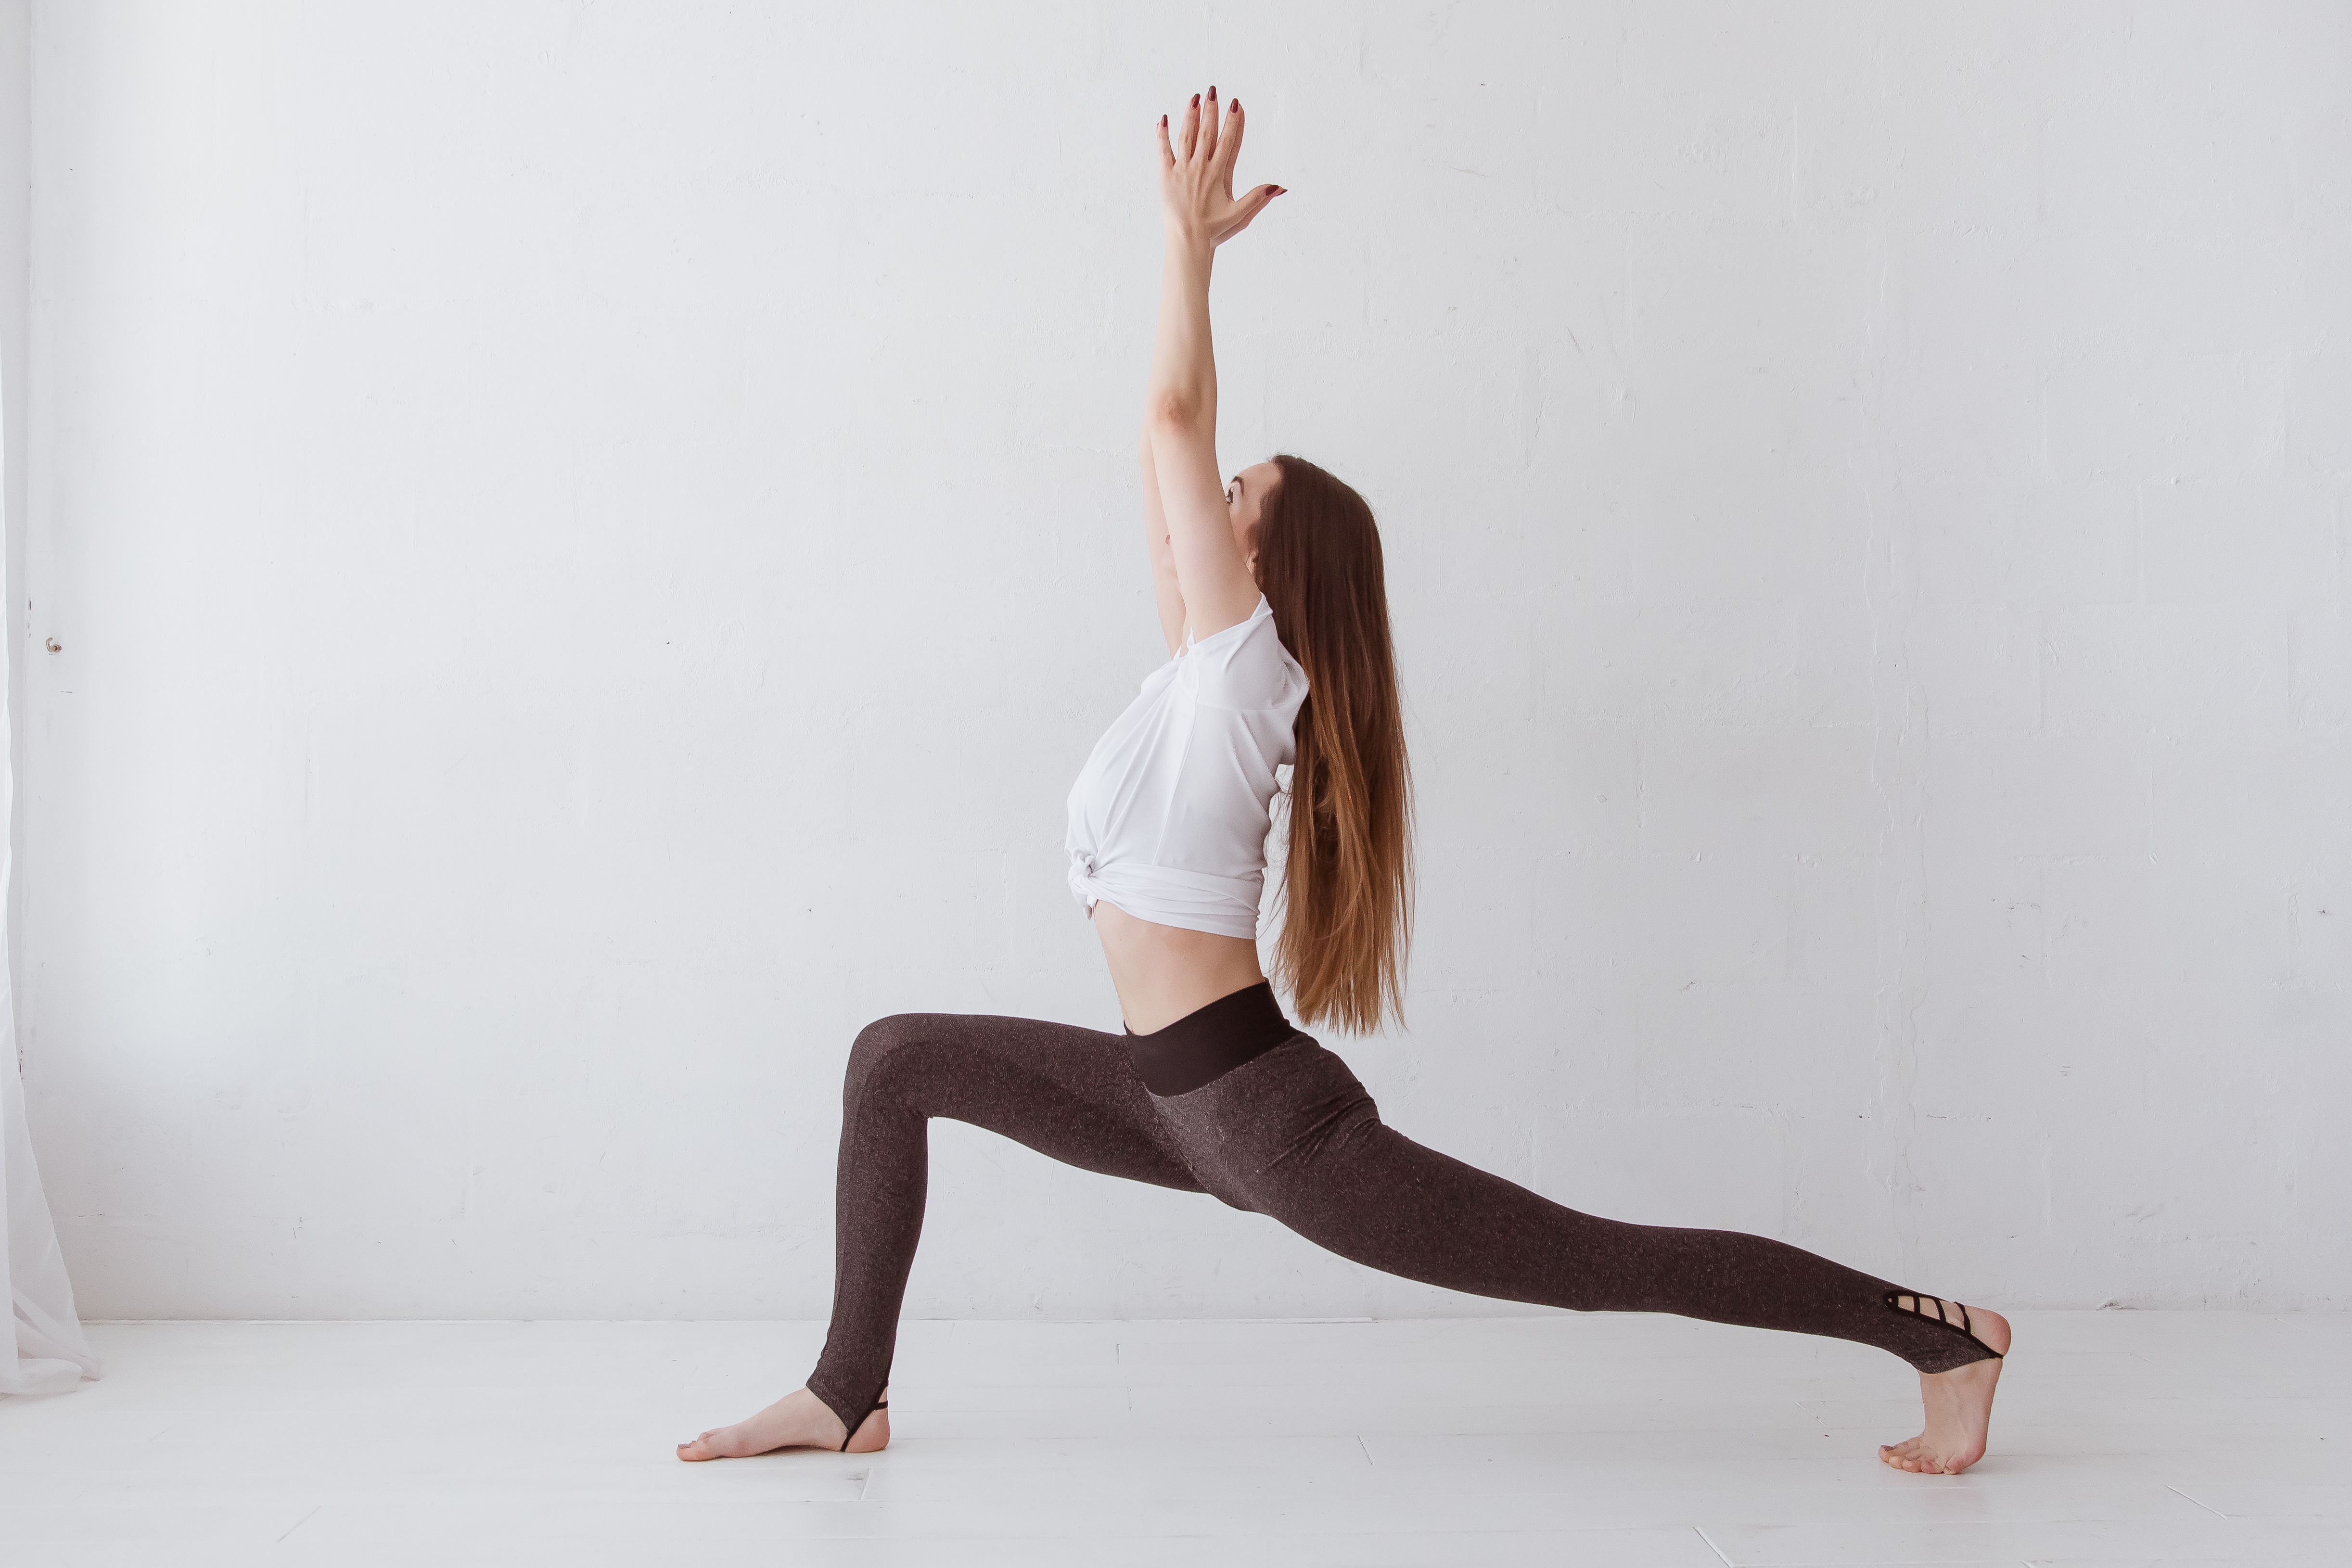 Crescent Lunge, Lunges in Yoga, Standing Poses, Beginner's Yoga